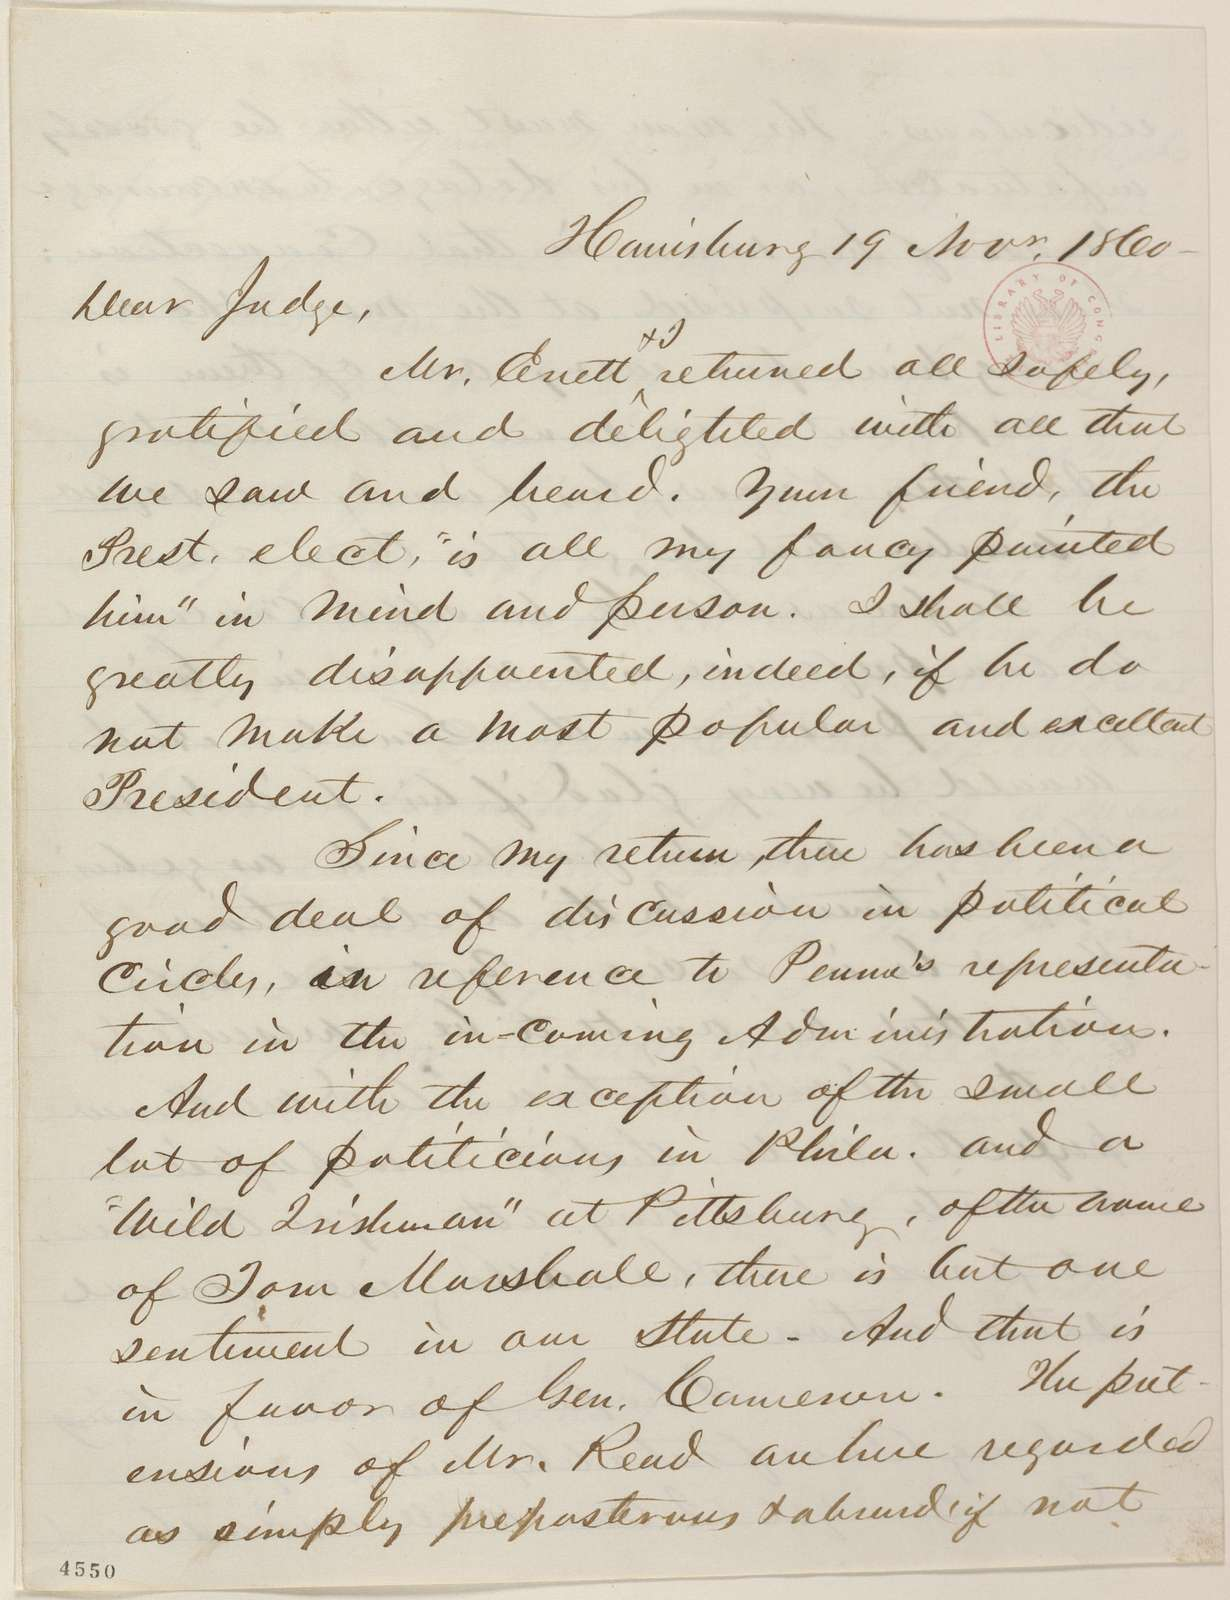 Abraham Lincoln papers: Series 1. General Correspondence. 1833-1916: Joseph Casey to David Davis, Monday, November 19, 1860 (Cabinet appointments)